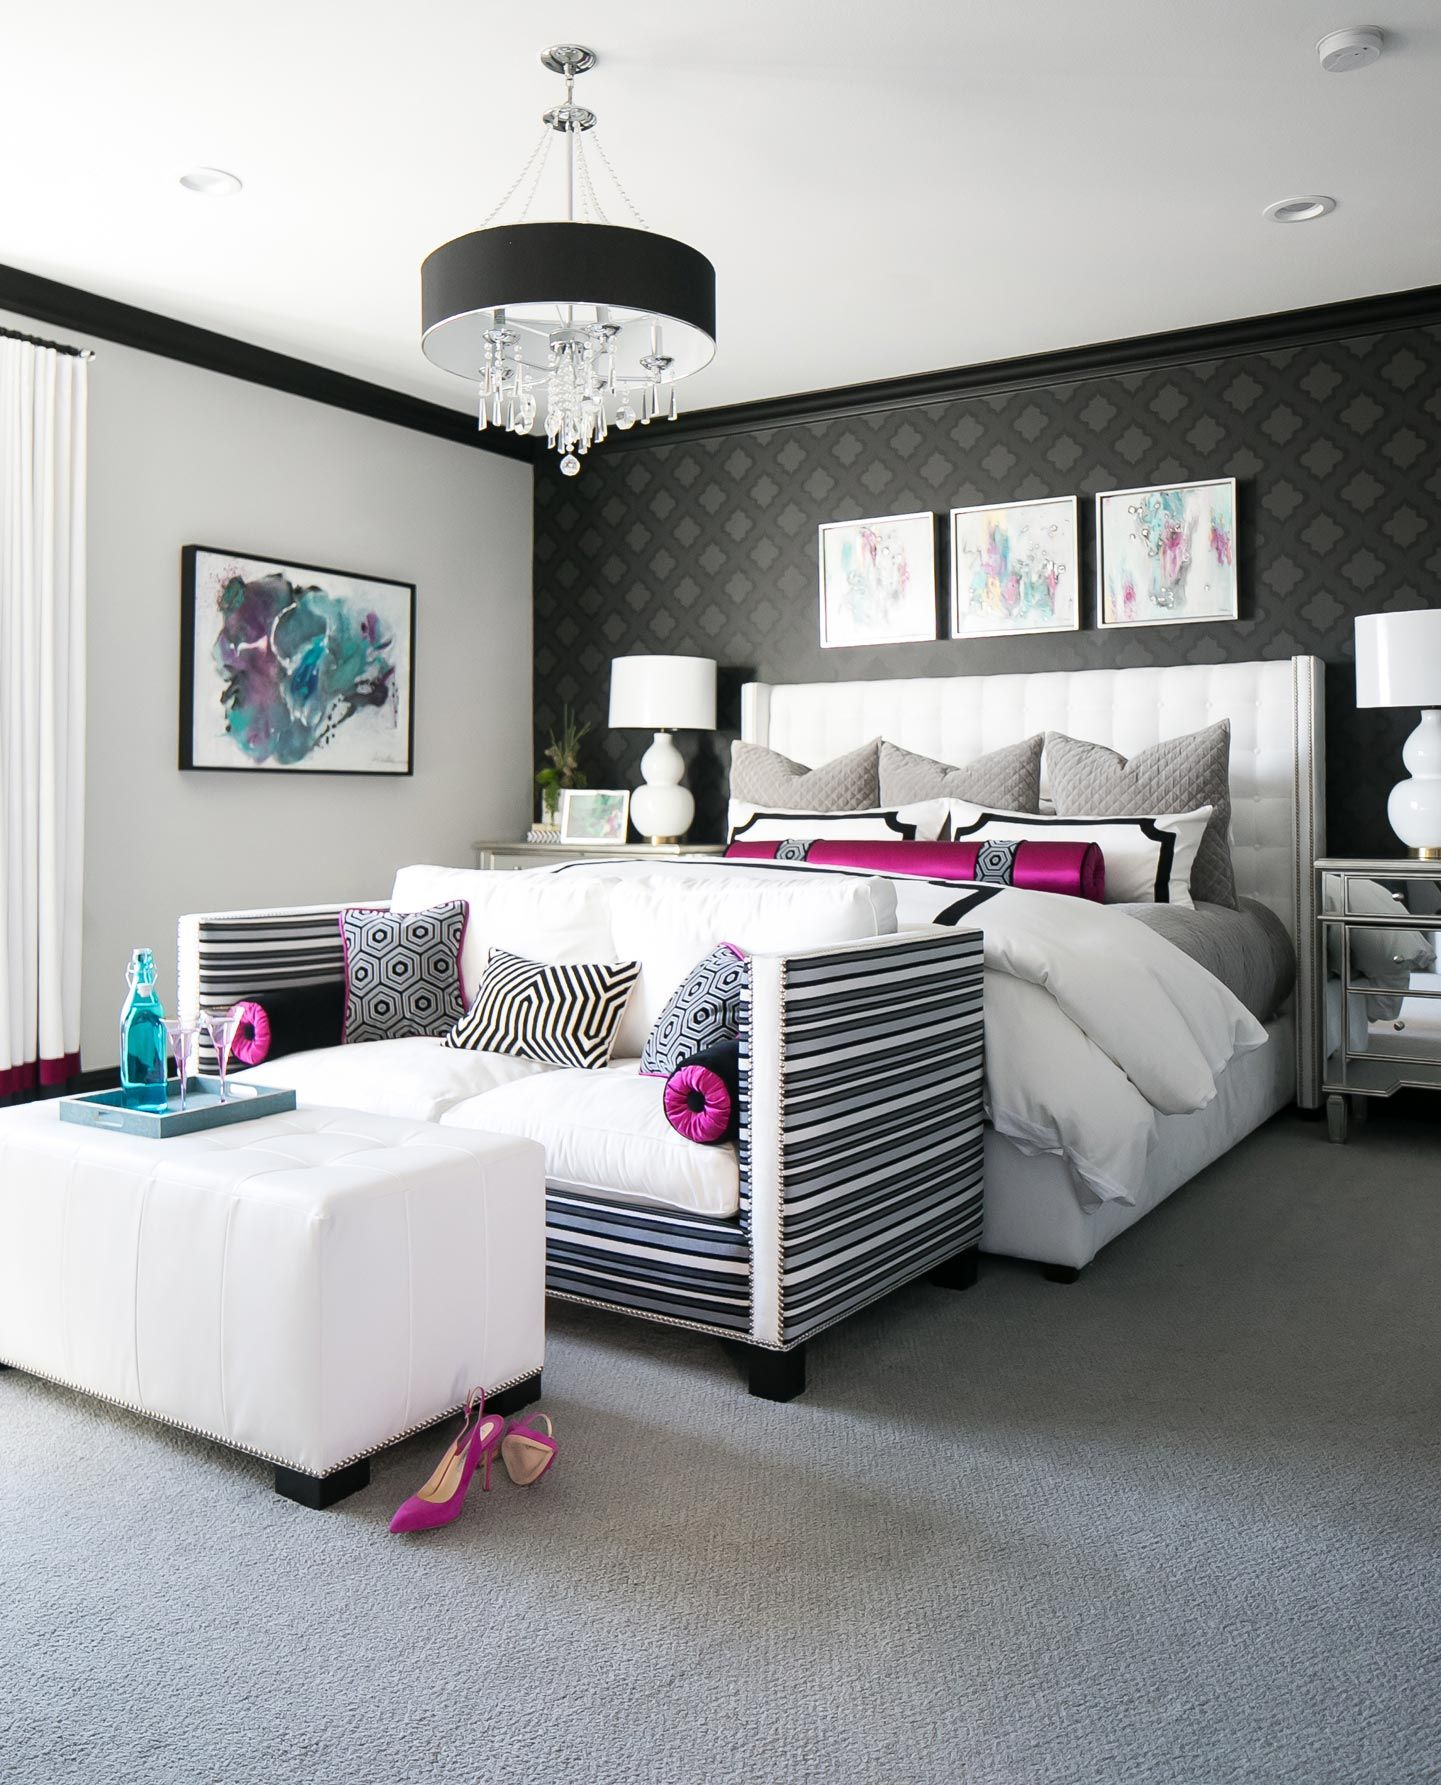 21 Master Bedroom Interior Designs Decorating Ideas: Pin By Macey Lynn On Future Home